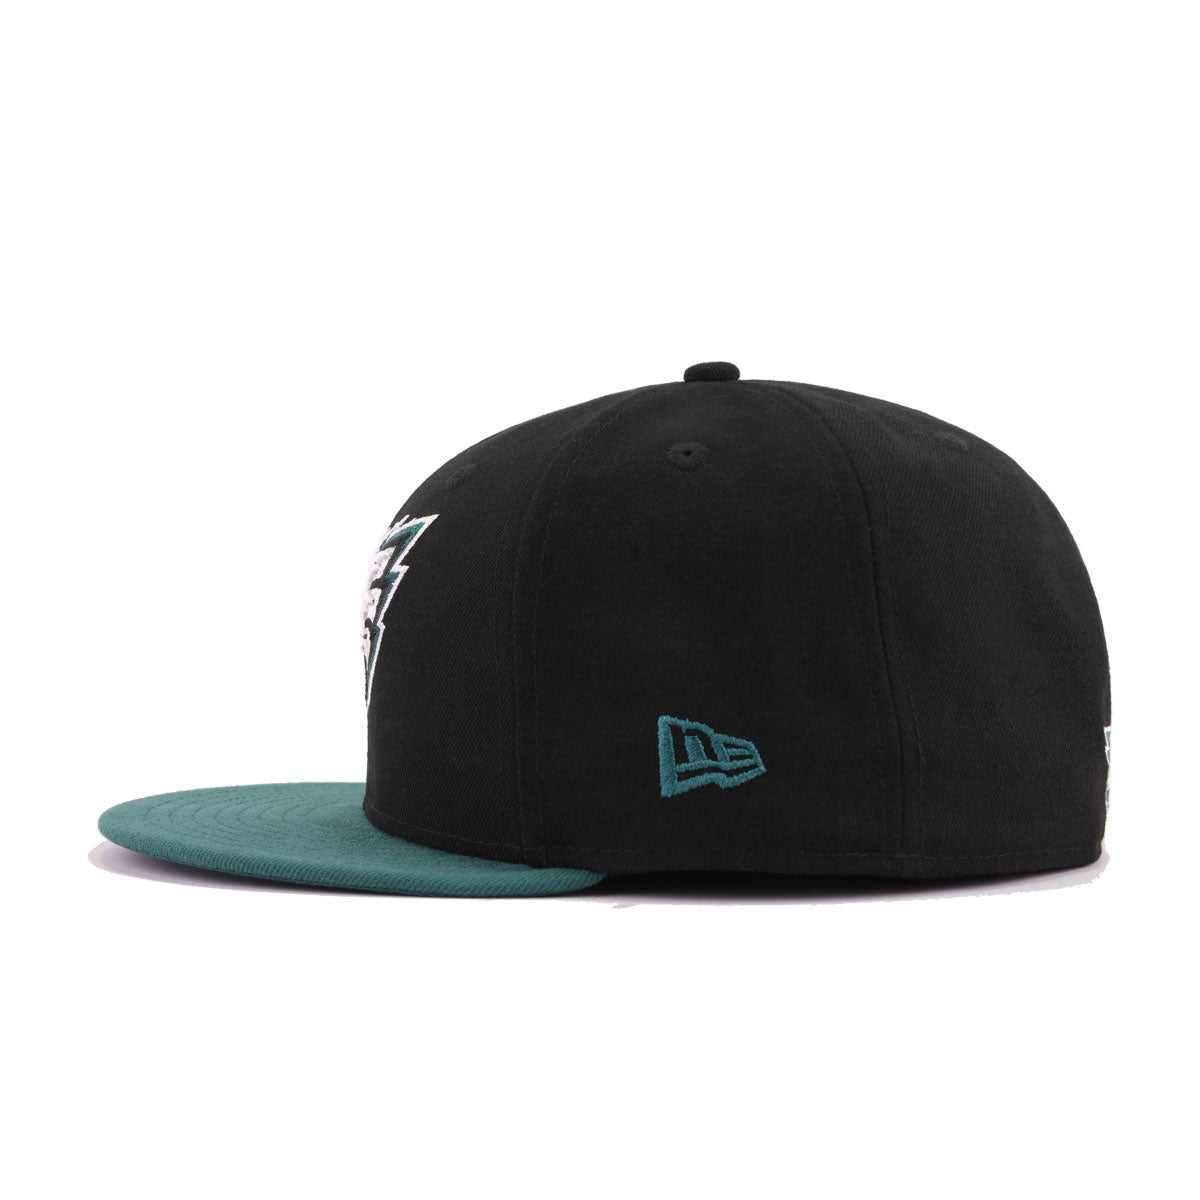 b6d14ac4e57 Philadelphia Eagles Black Pine Needle Green New Era 59Fifty Fitted